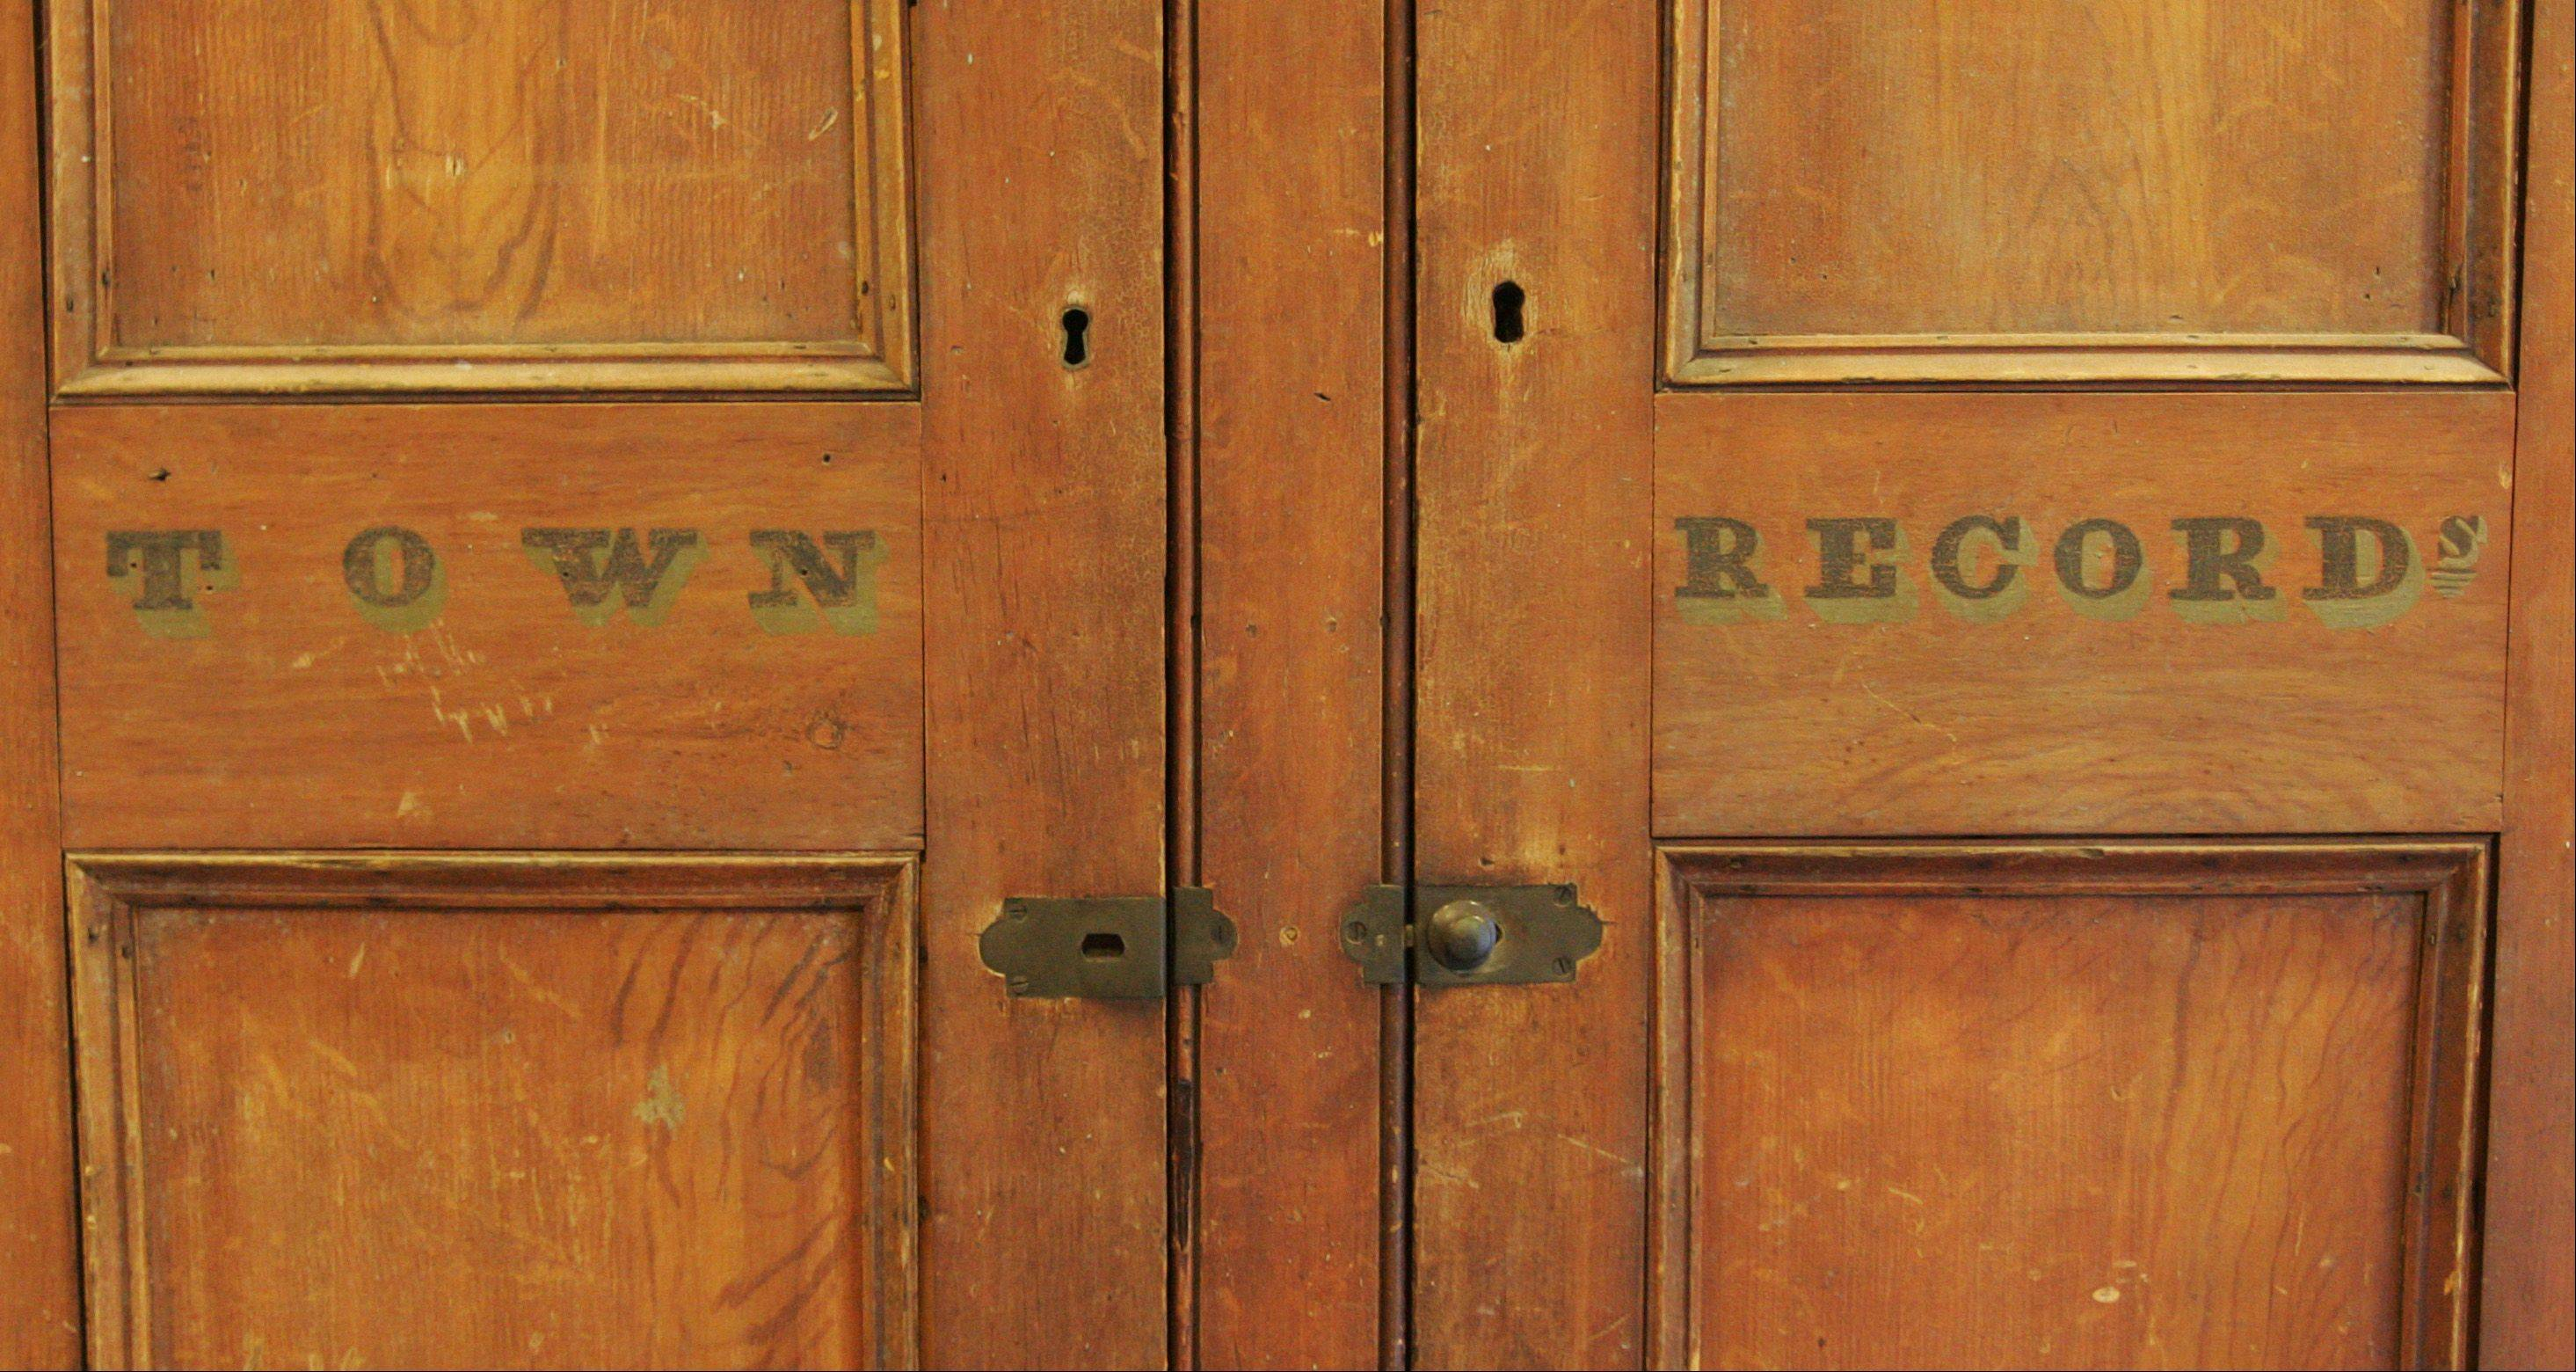 This cabinet came from New York state, and still bears the writing Town Records on the outside. It was used to store, you guessed it, records for the town of Highland Falls. The shelves inside still bear partial names of the residents whose documents once filled the cabinet.